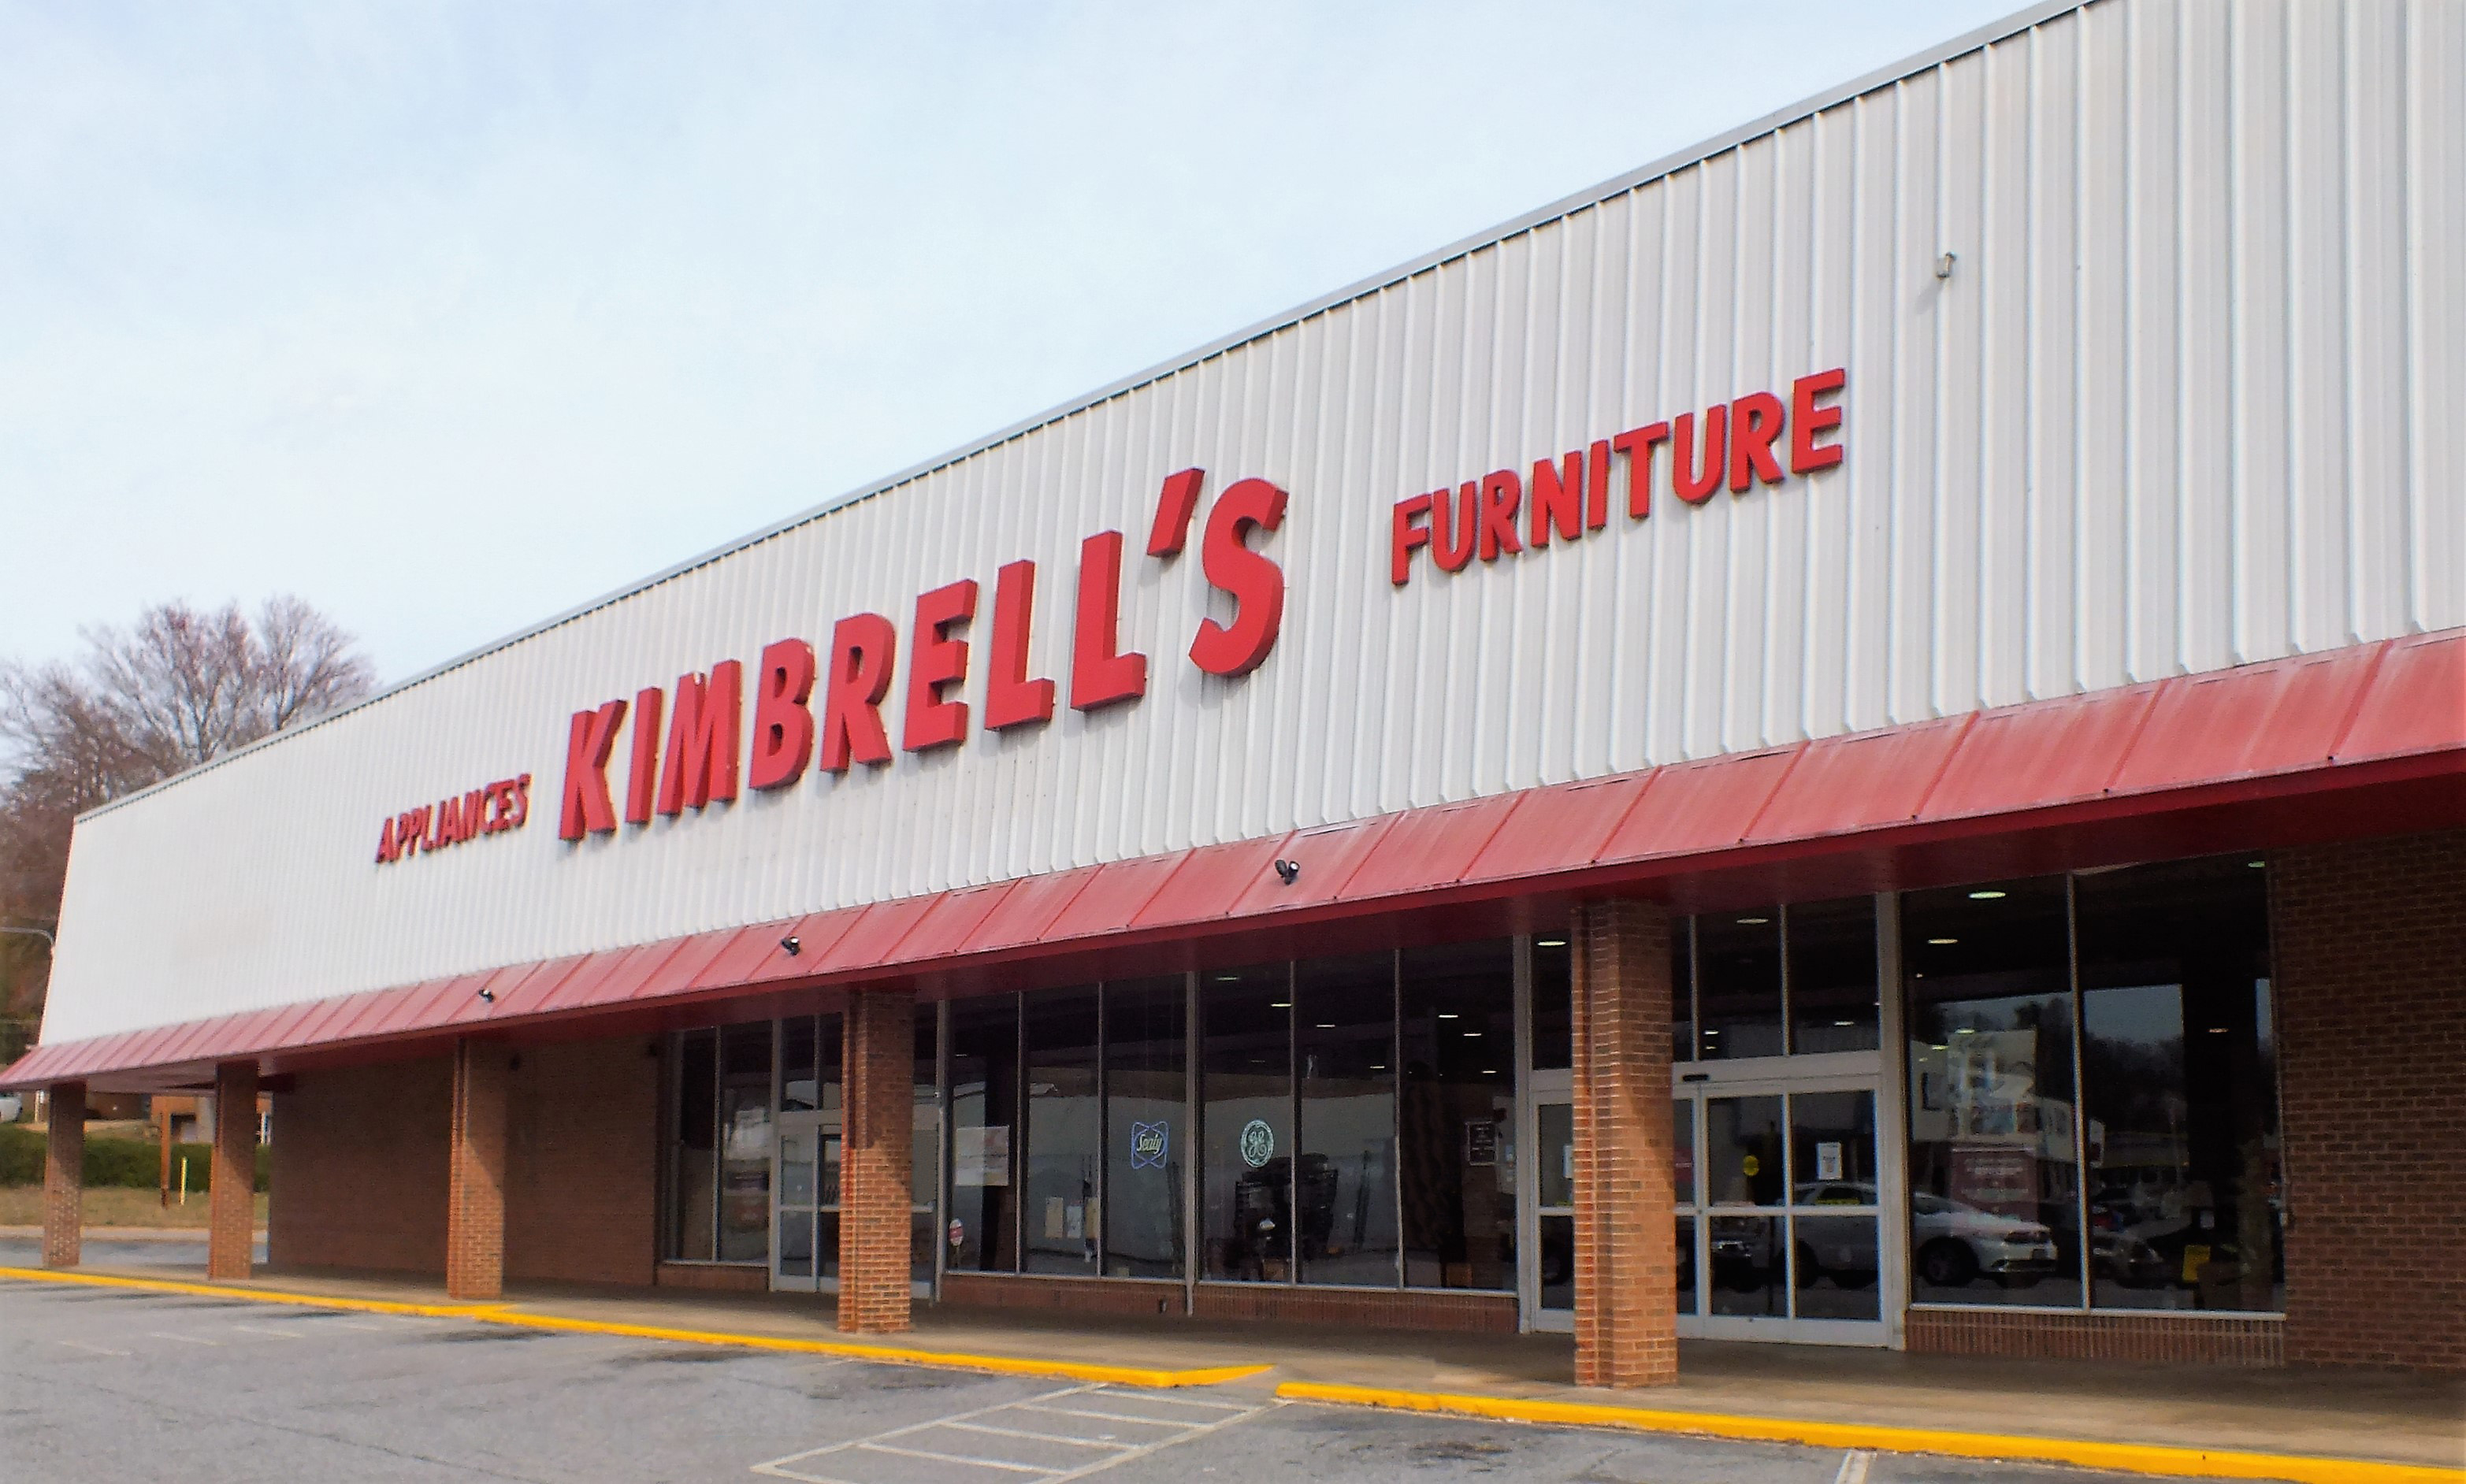 Kimbrell S Furniture